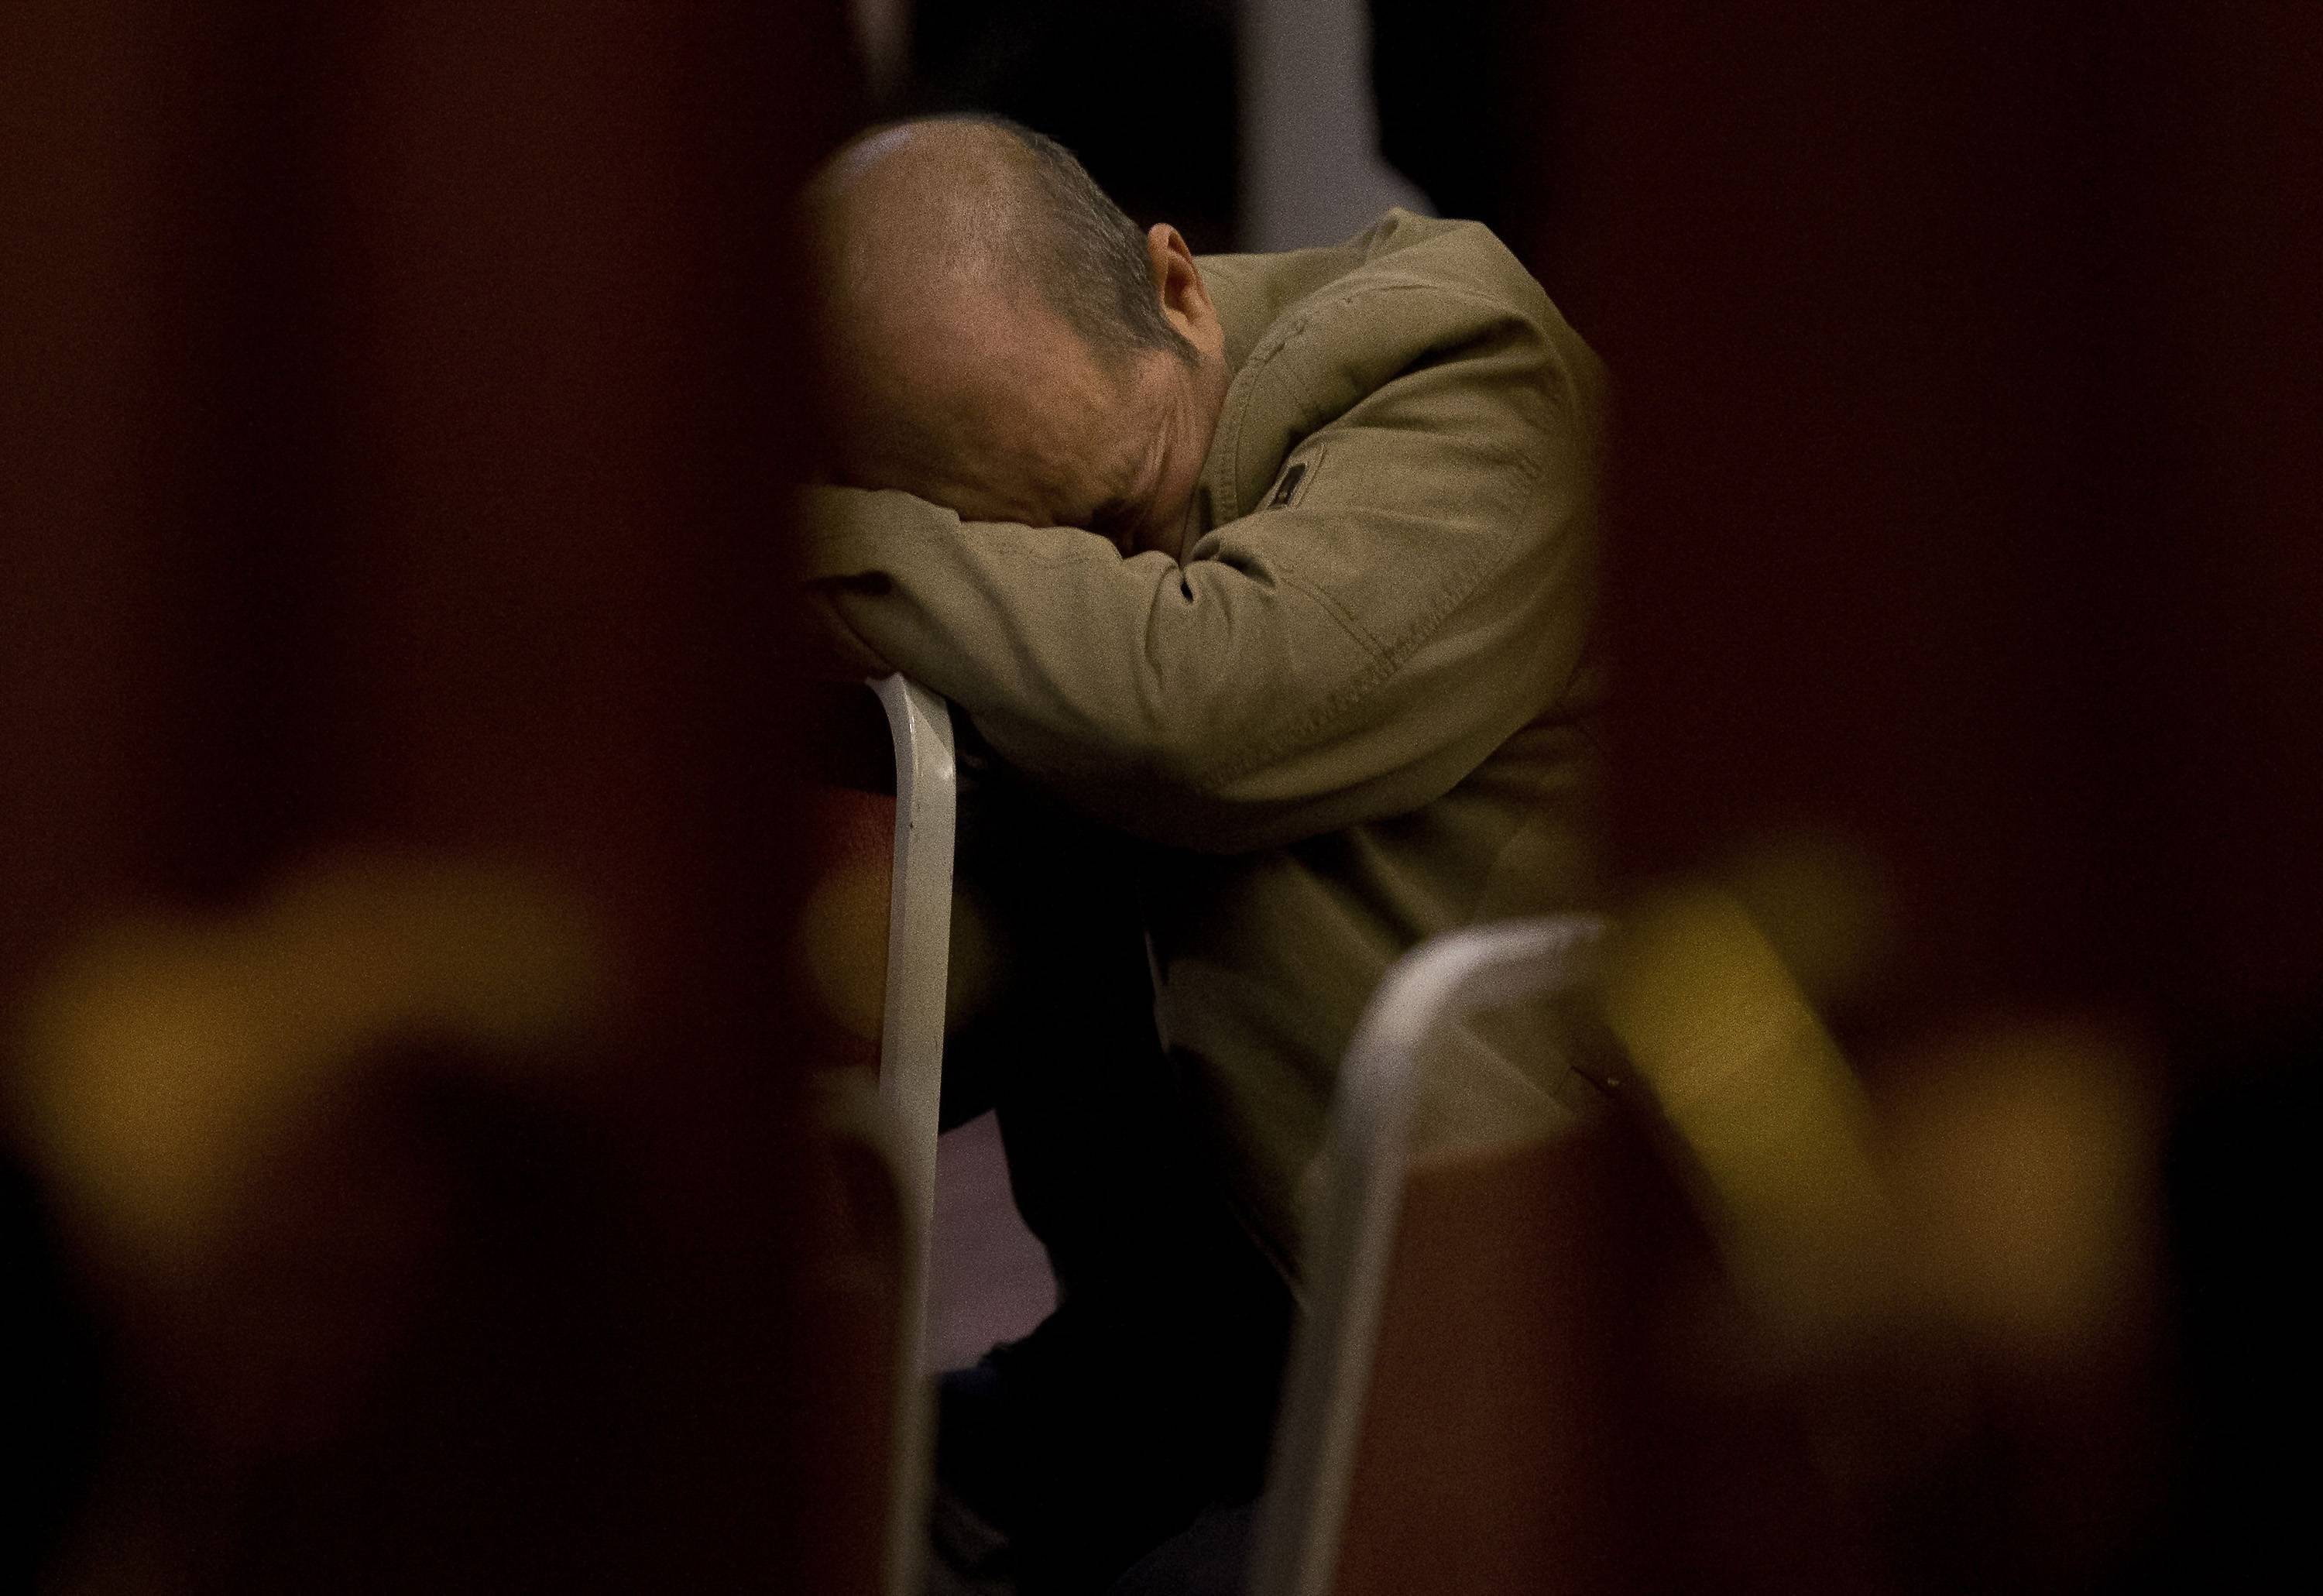 Associated PressA relative of Chinese passengers aboard the missing Malaysia Airlines Flight MH370 rests on a chair as he waits for a news briefing by the Airlines' officials at a hotel ballroom in Beijing, China.